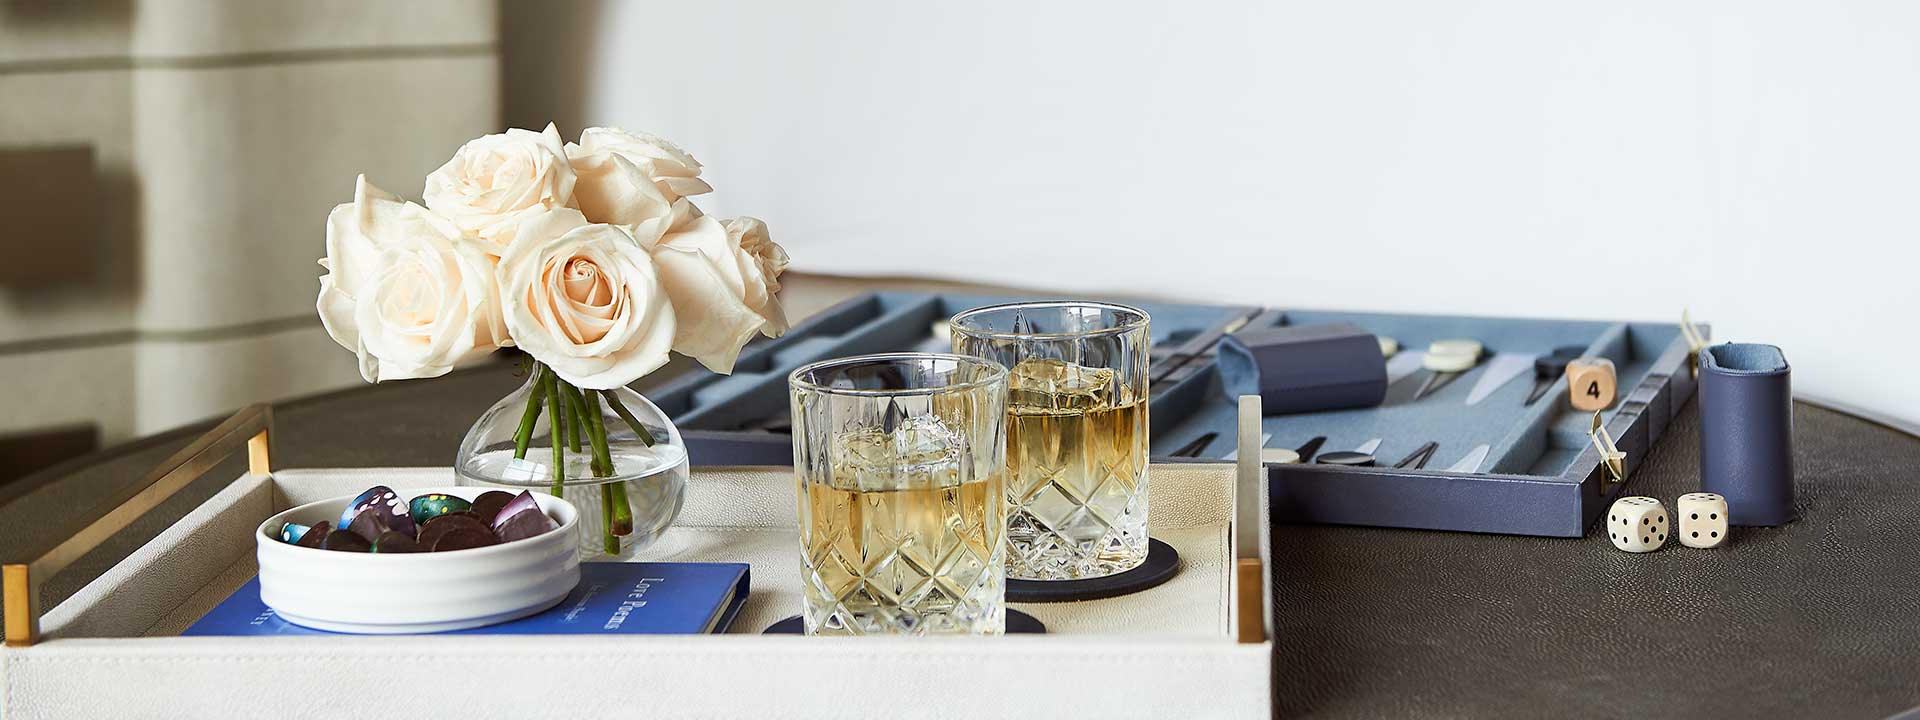 Romantic drinks and treats in a bedroom